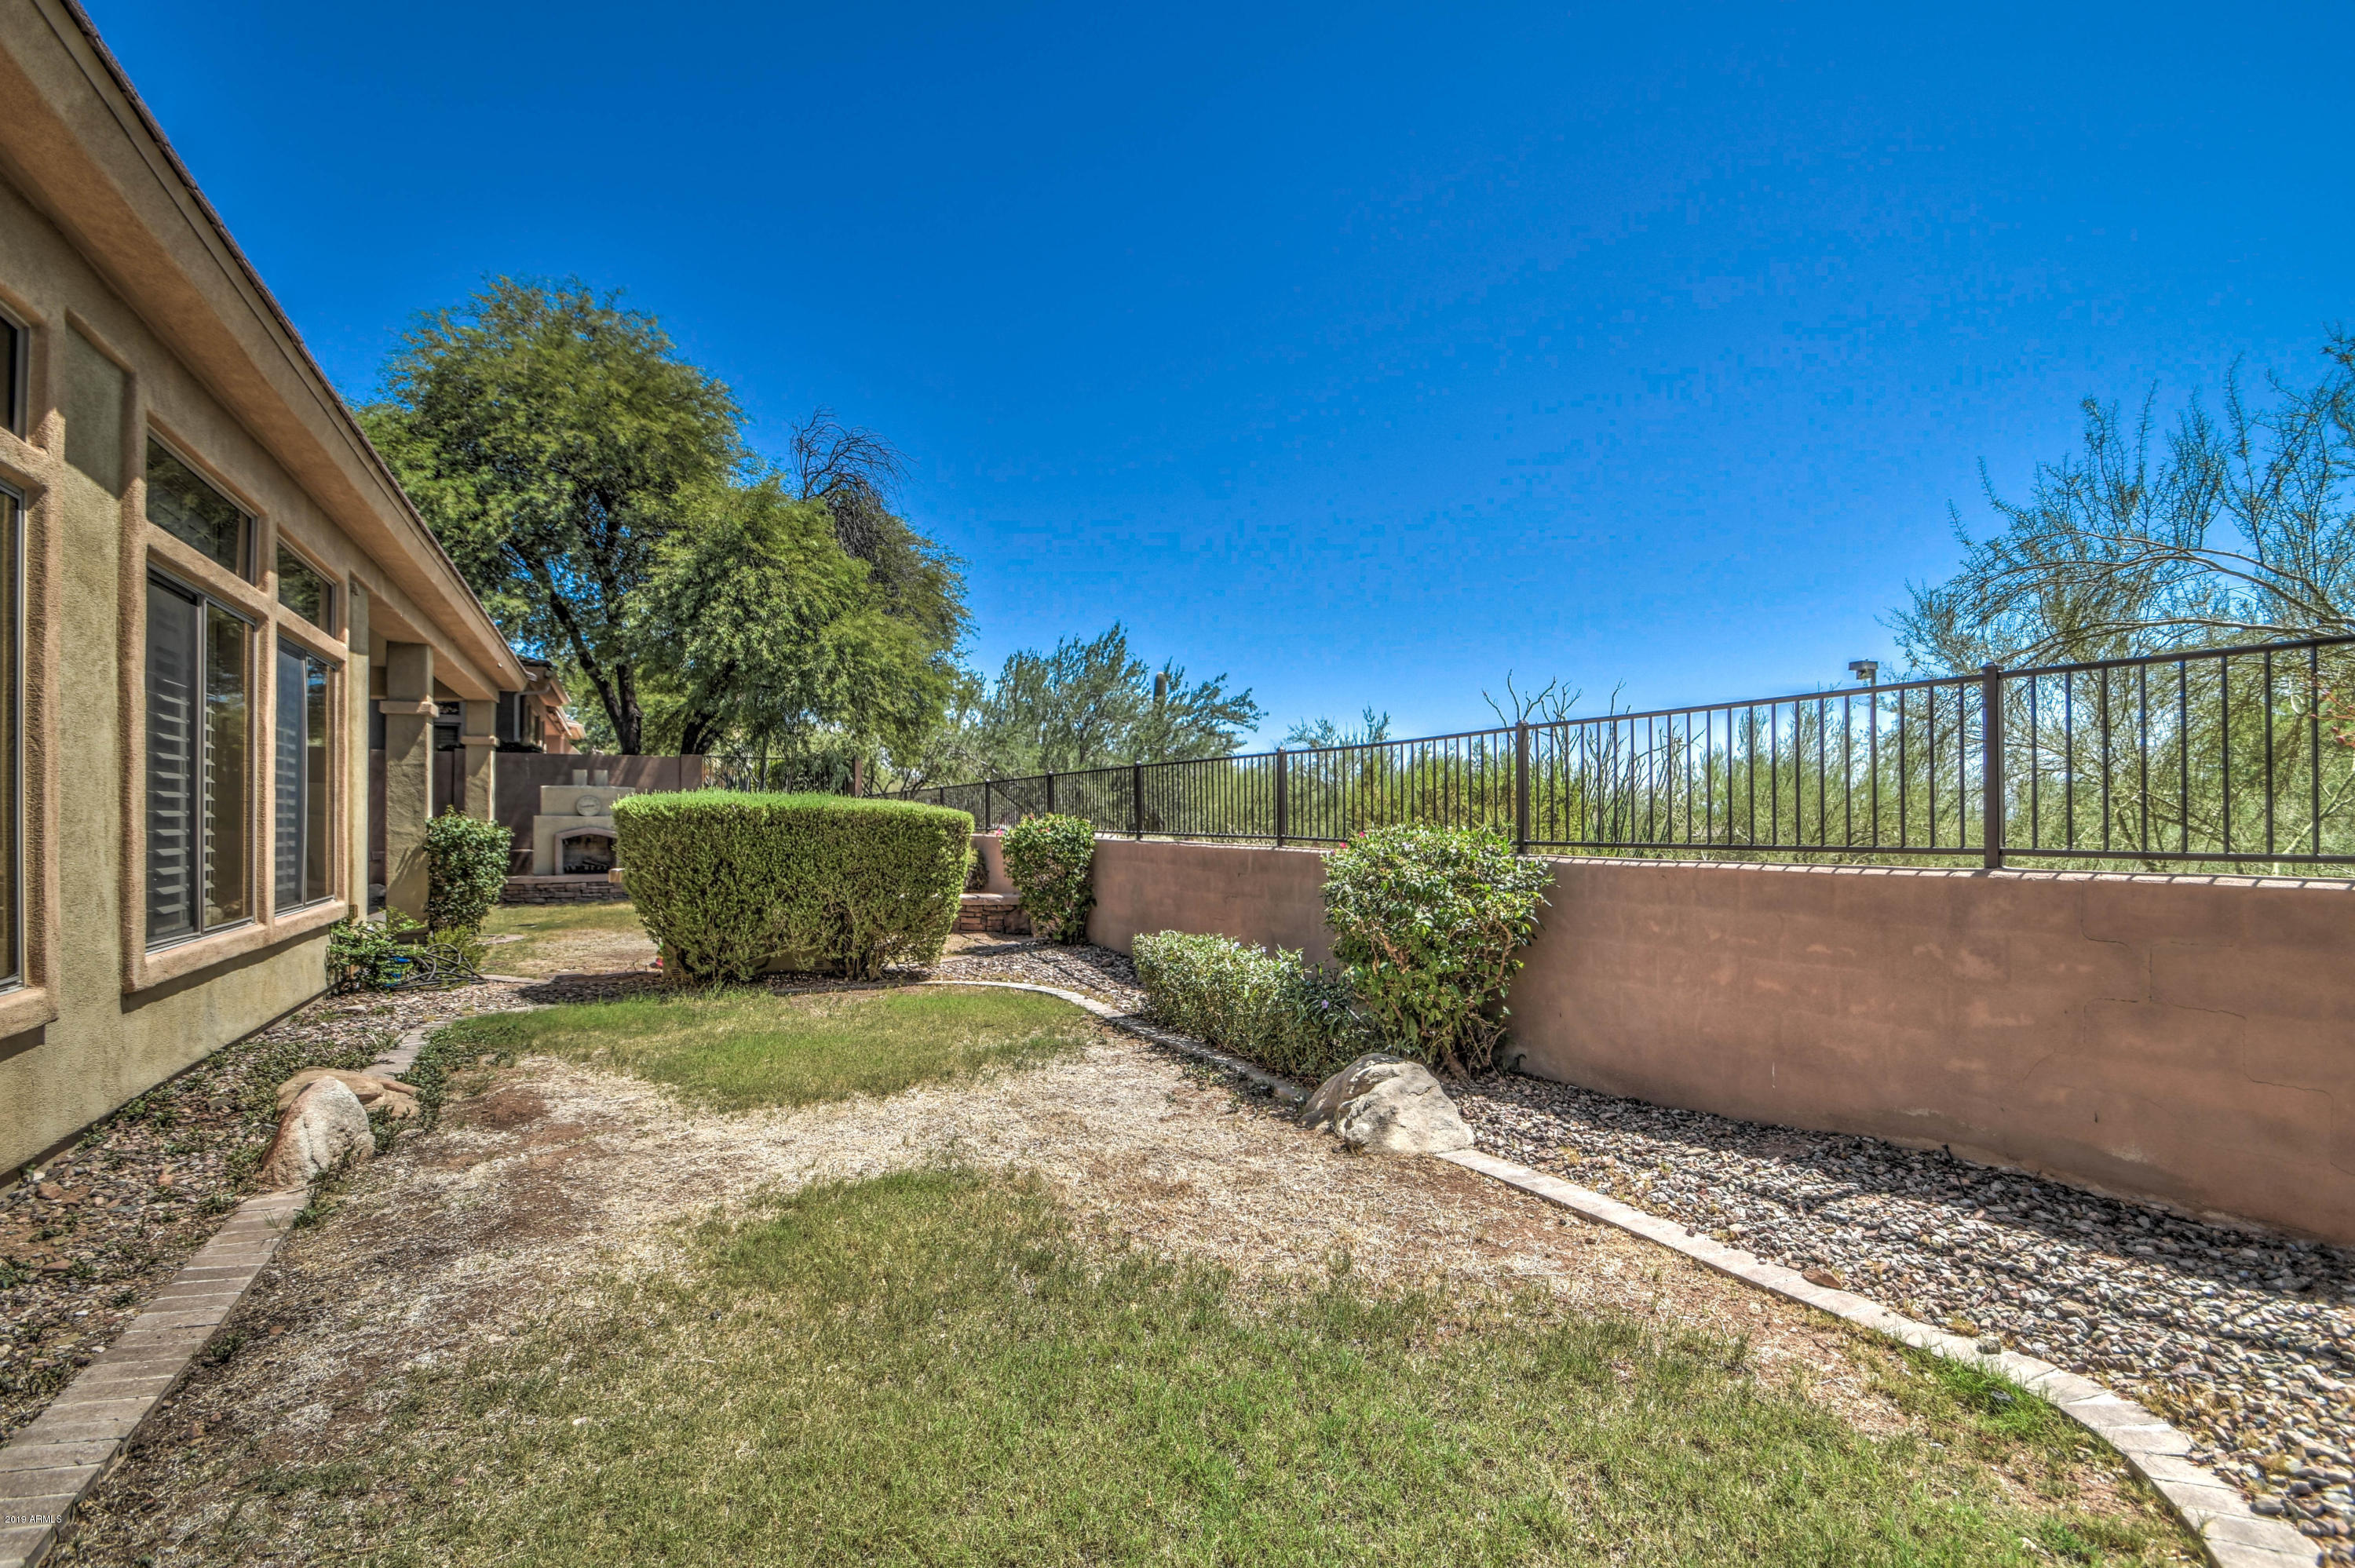 MLS 5970404 2249 W HAZELHURST Drive, Anthem, AZ 85086 Anthem AZ Three Bedroom